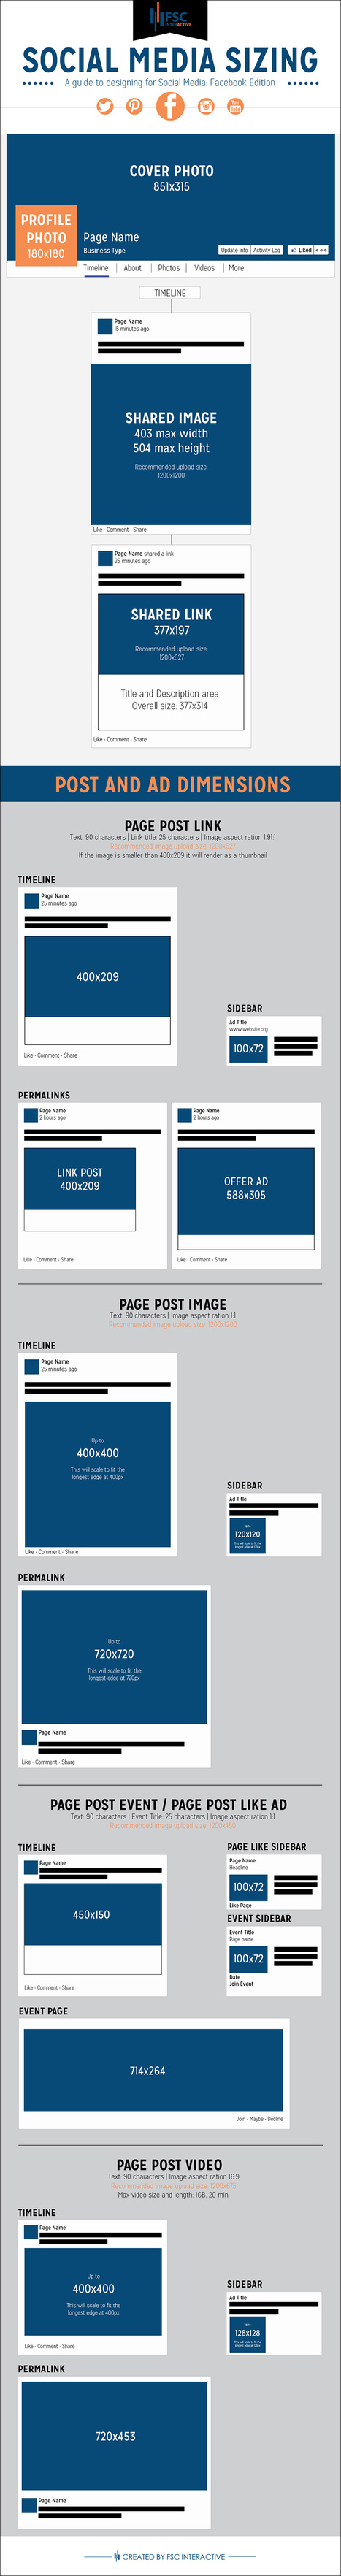 Social Media Sizing: All graphic sizes for Facebook media | D.I.P. Digital in Progress | Scoop.it